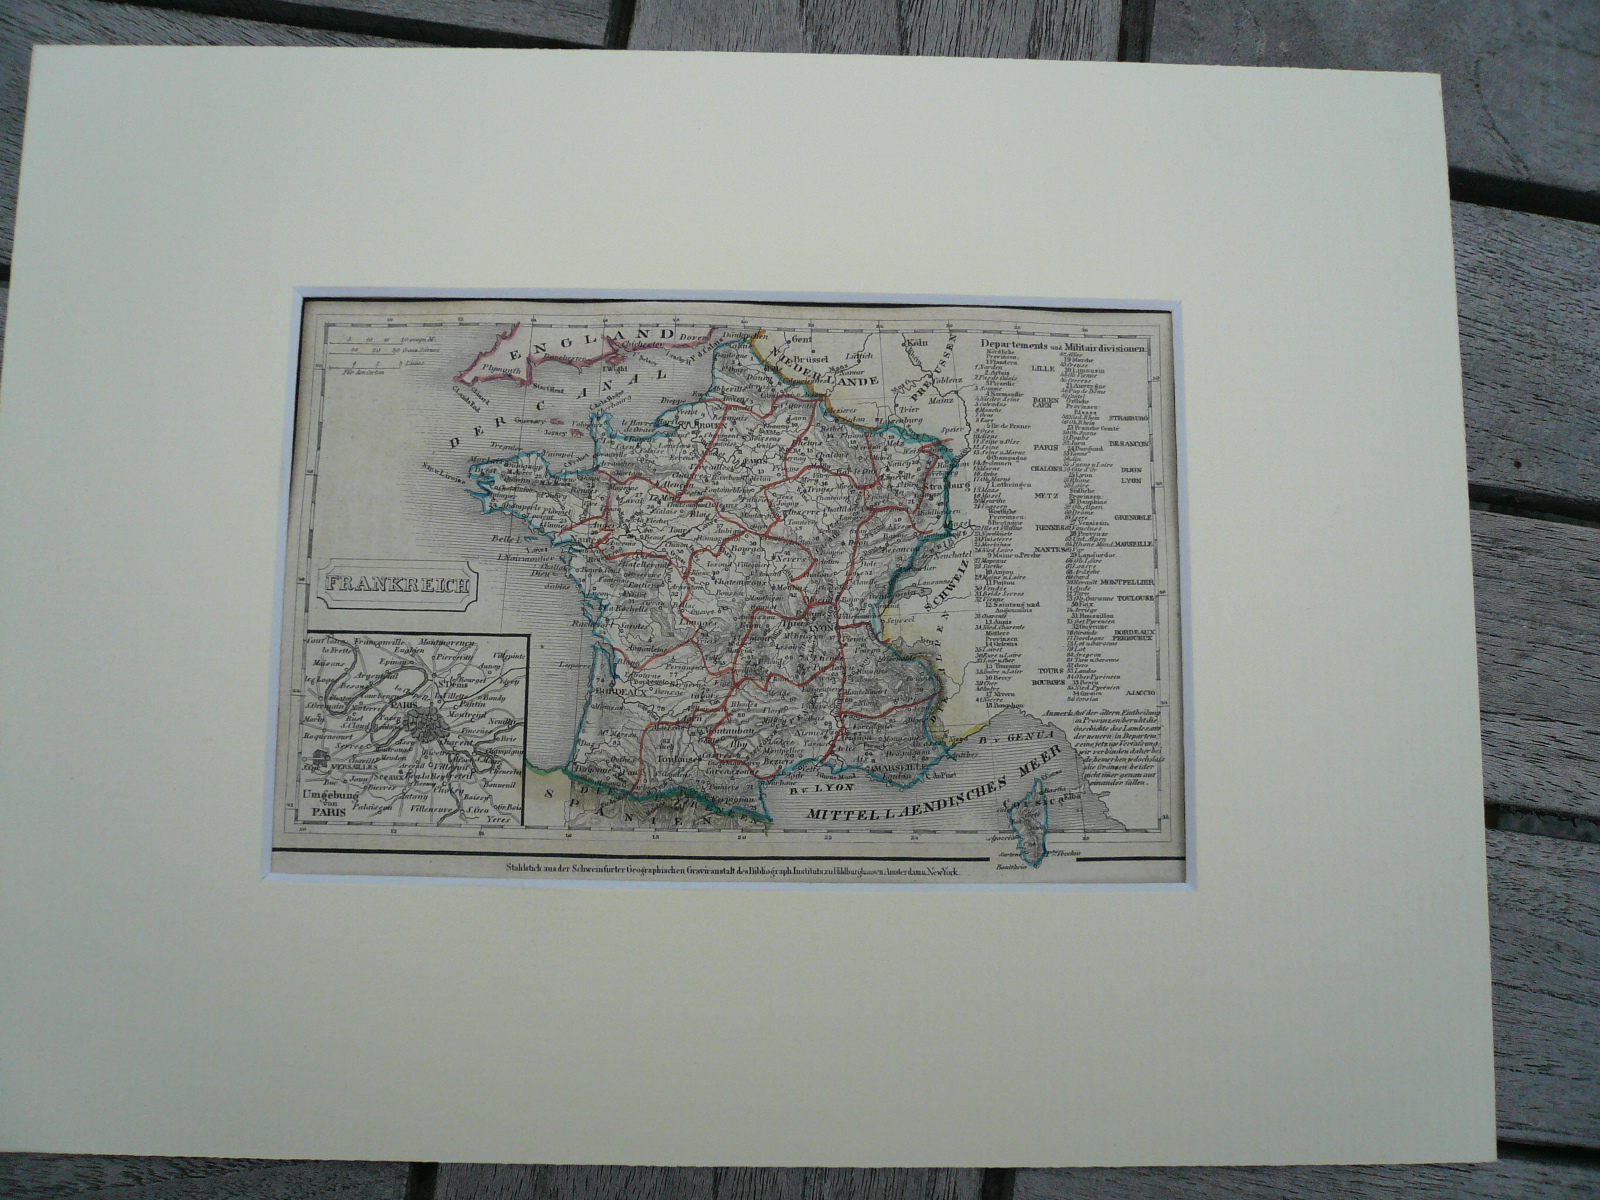 France, anno 1850, steelengraving